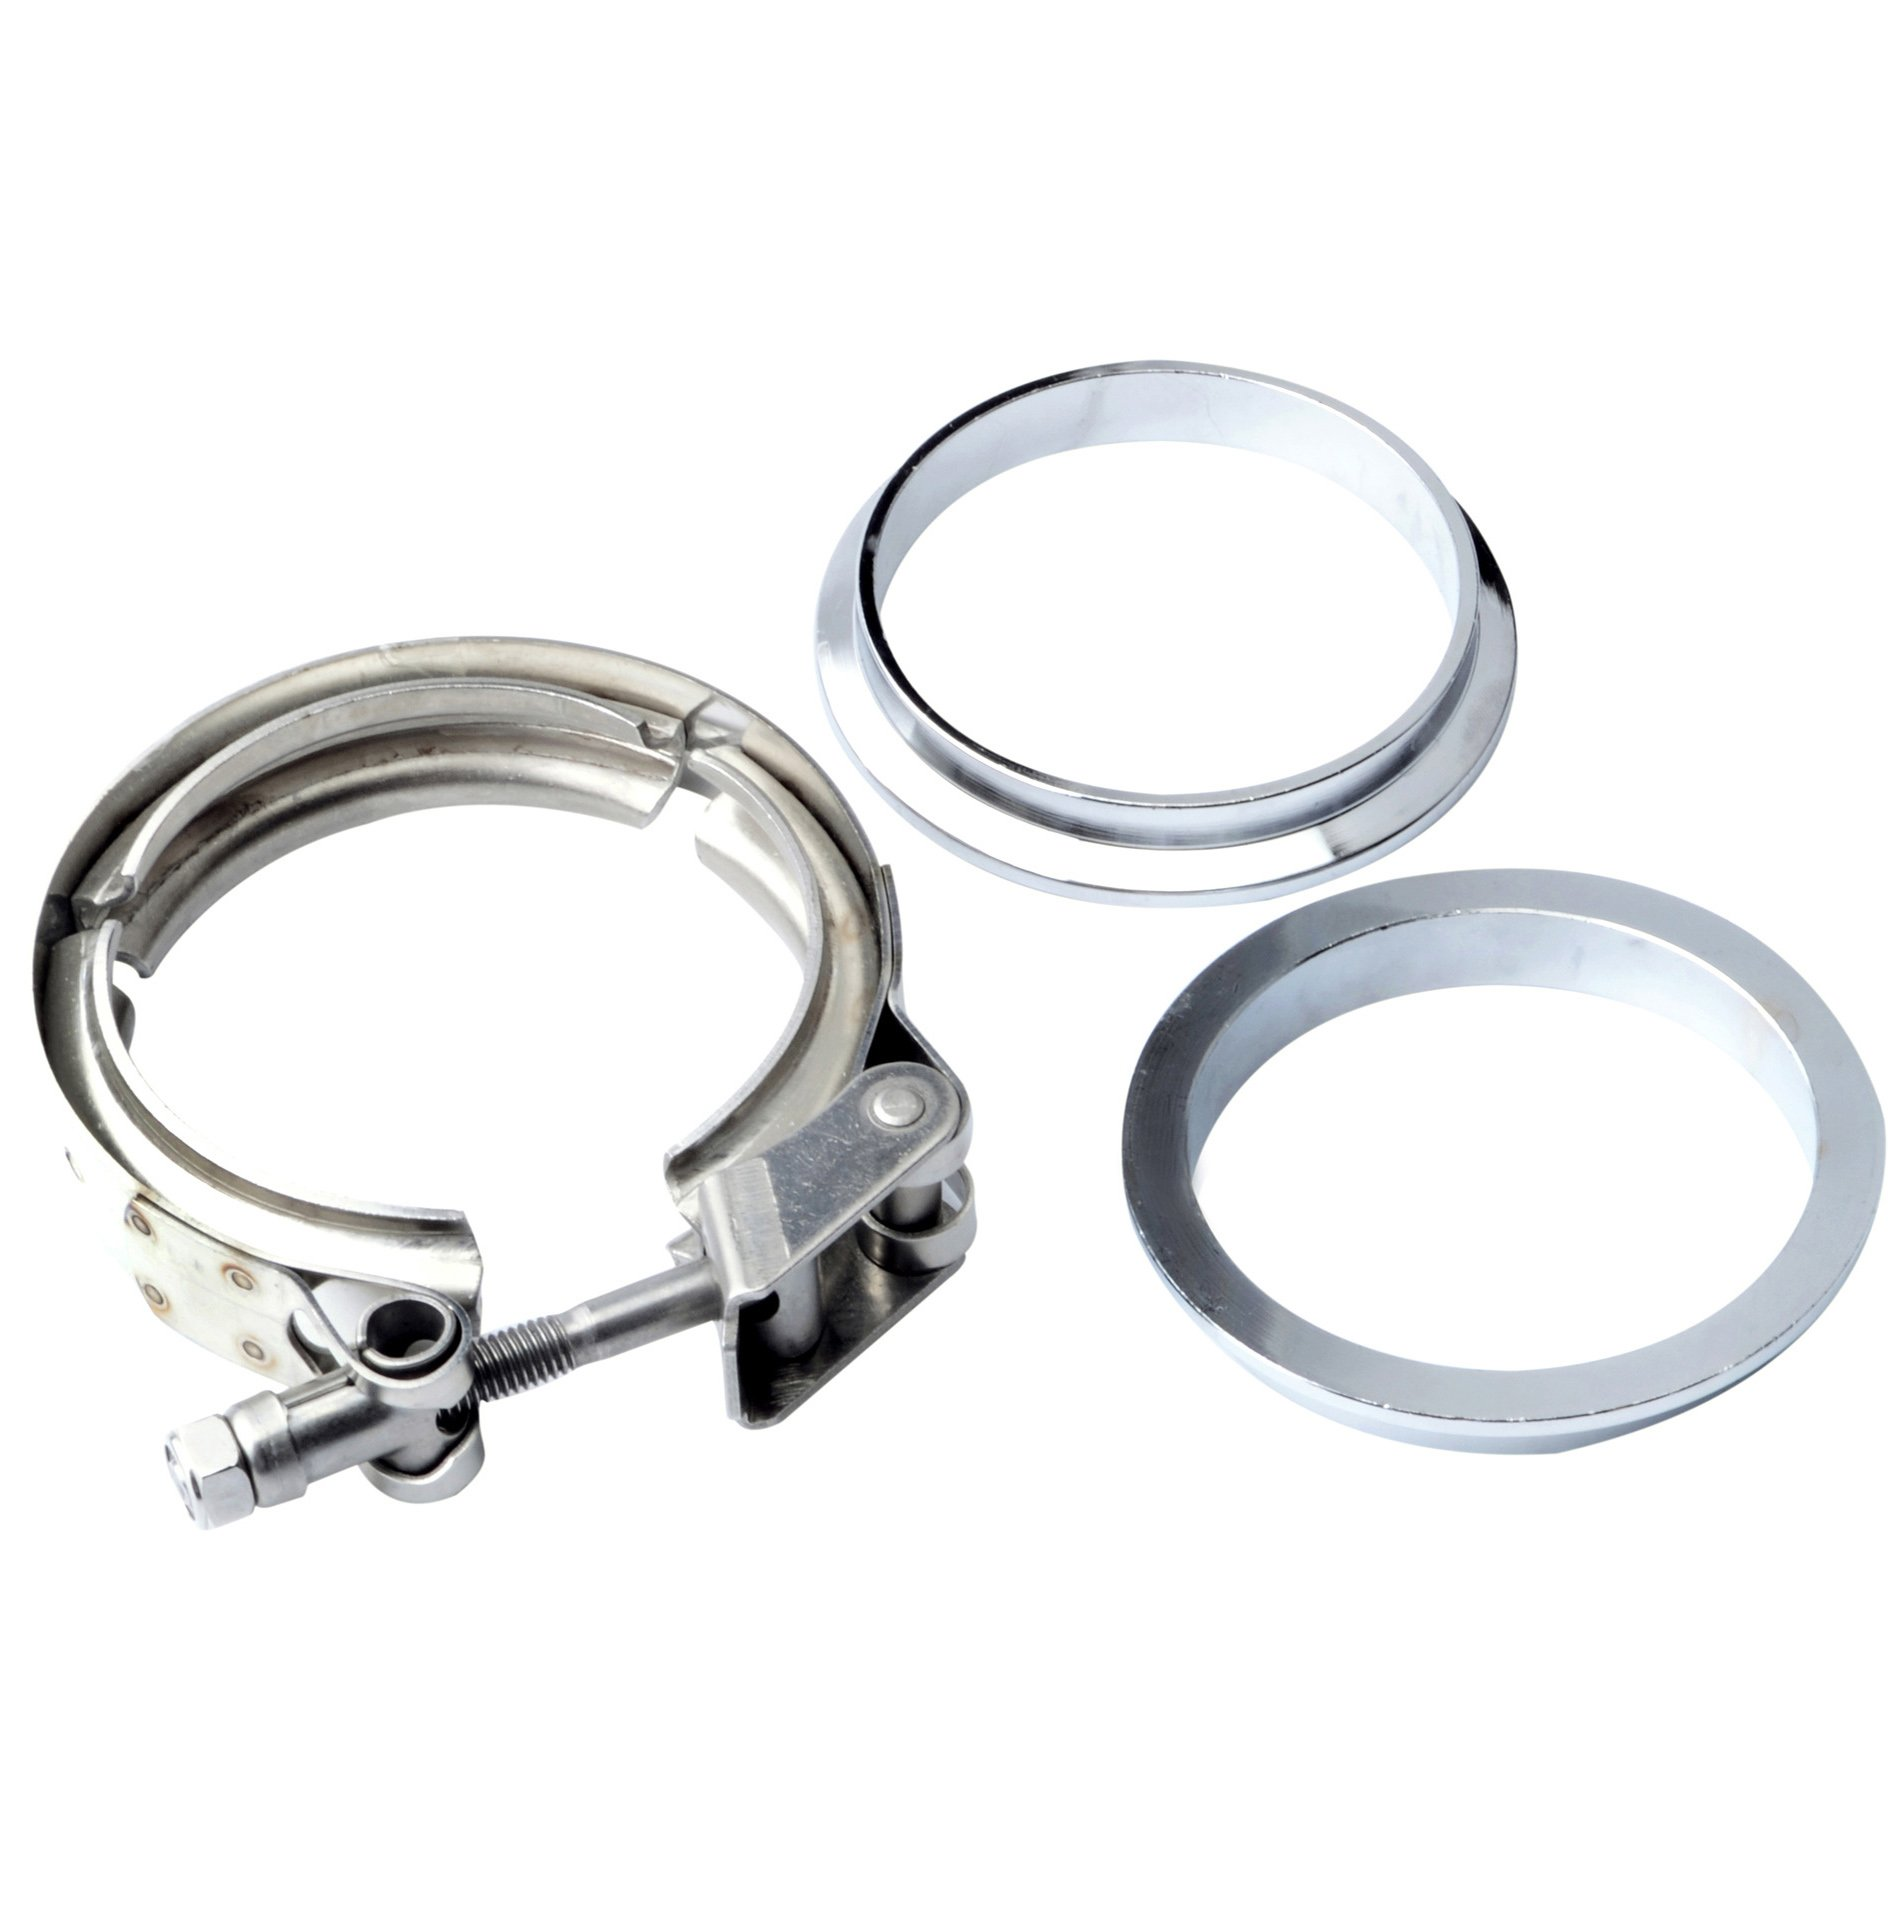 OBX Universal 3 Inch Stainless Steel V-Band Turbo Downpipe Exhaust Clamp Vband Non Adjustable 2Pcs